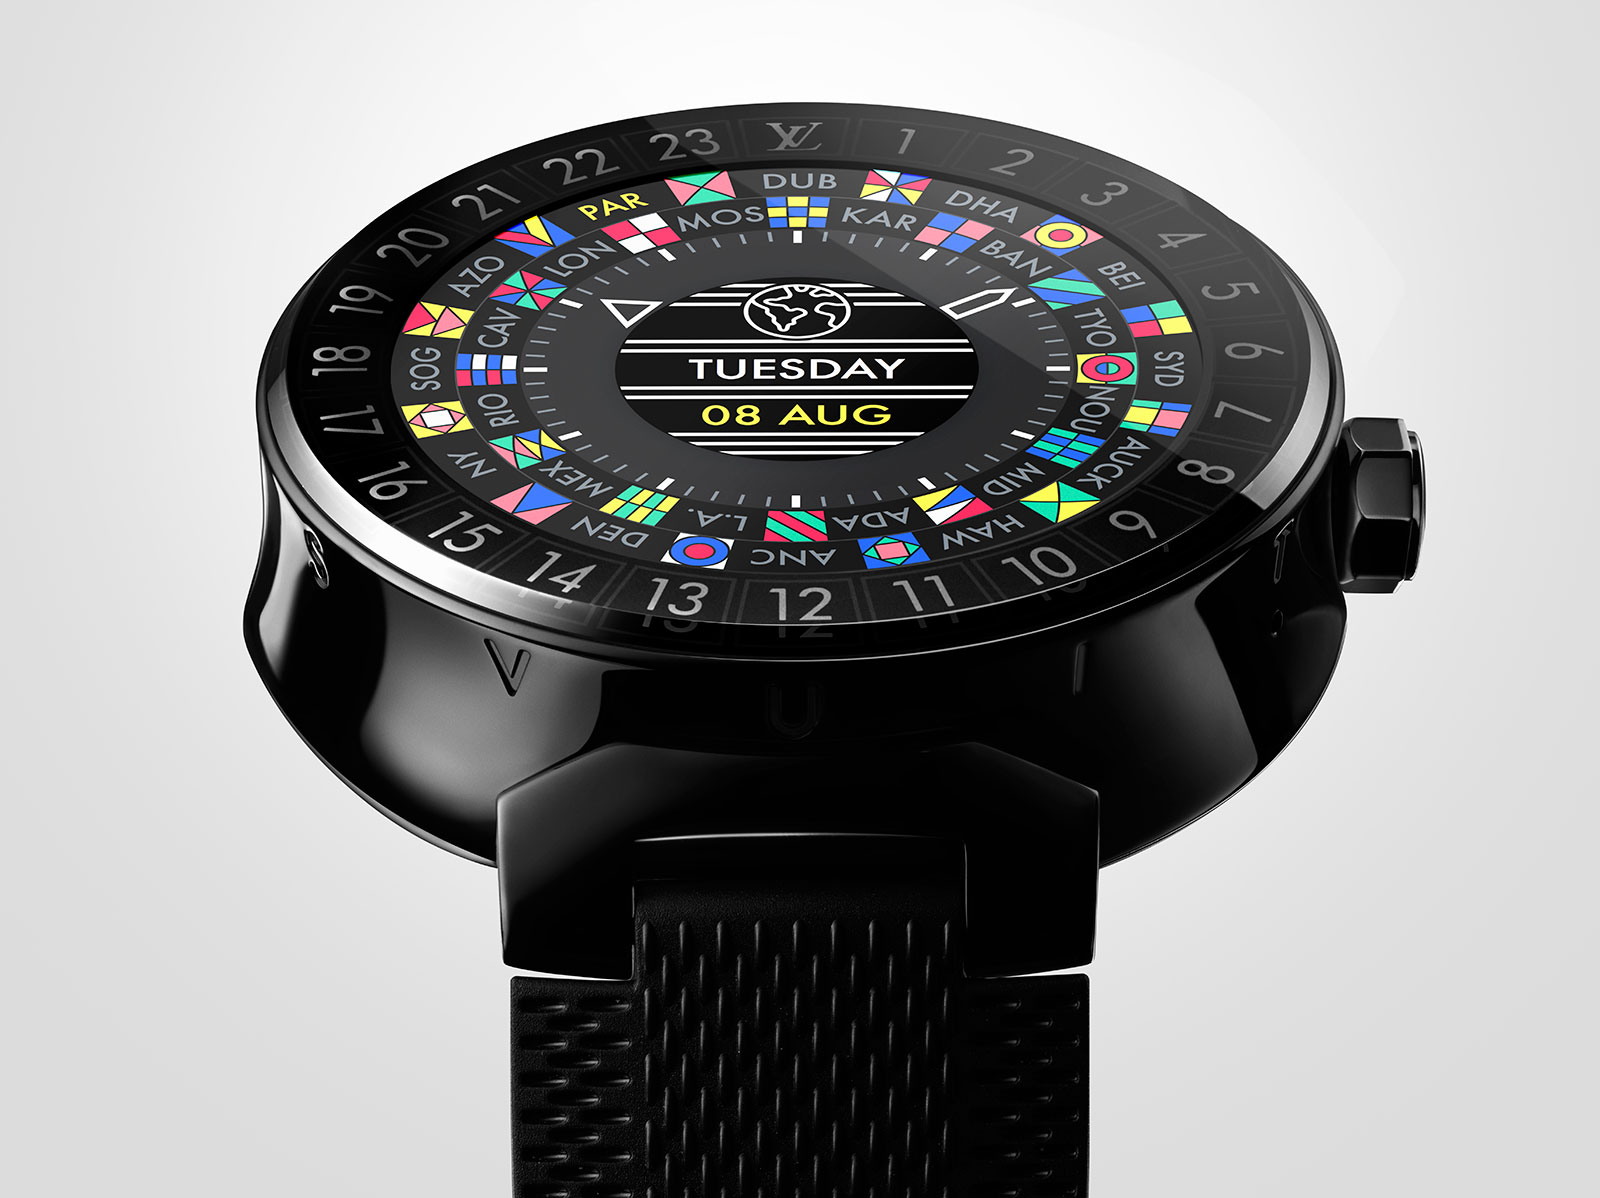 Louis Vuitton Introduces the Tambour Horizon Smartwatch ...